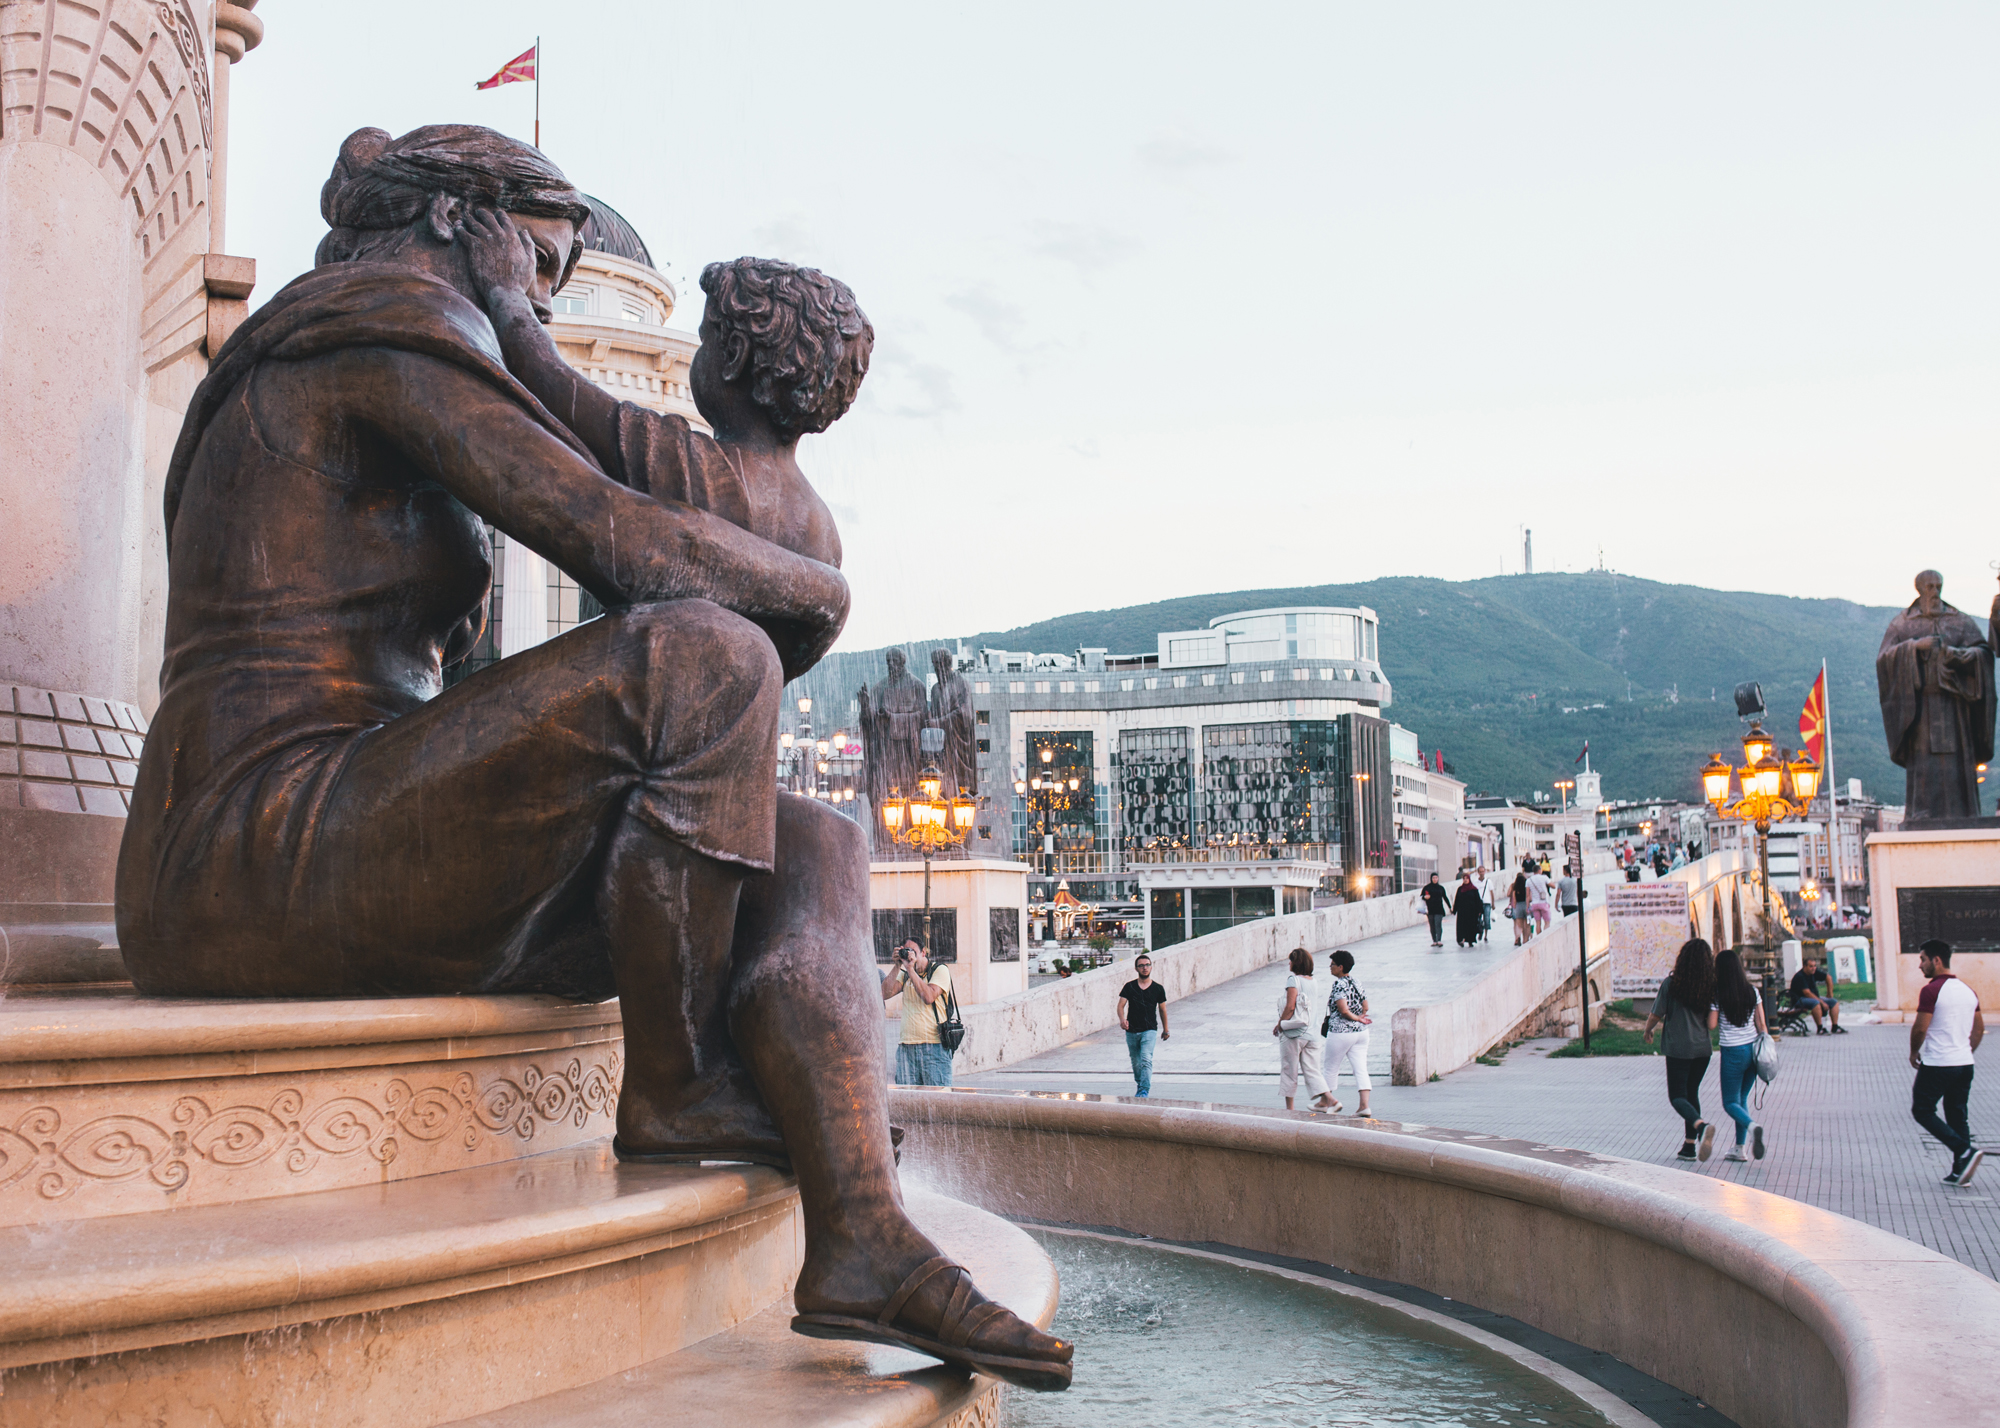 A statue of a mother and a child in Skopje, Macedonia.